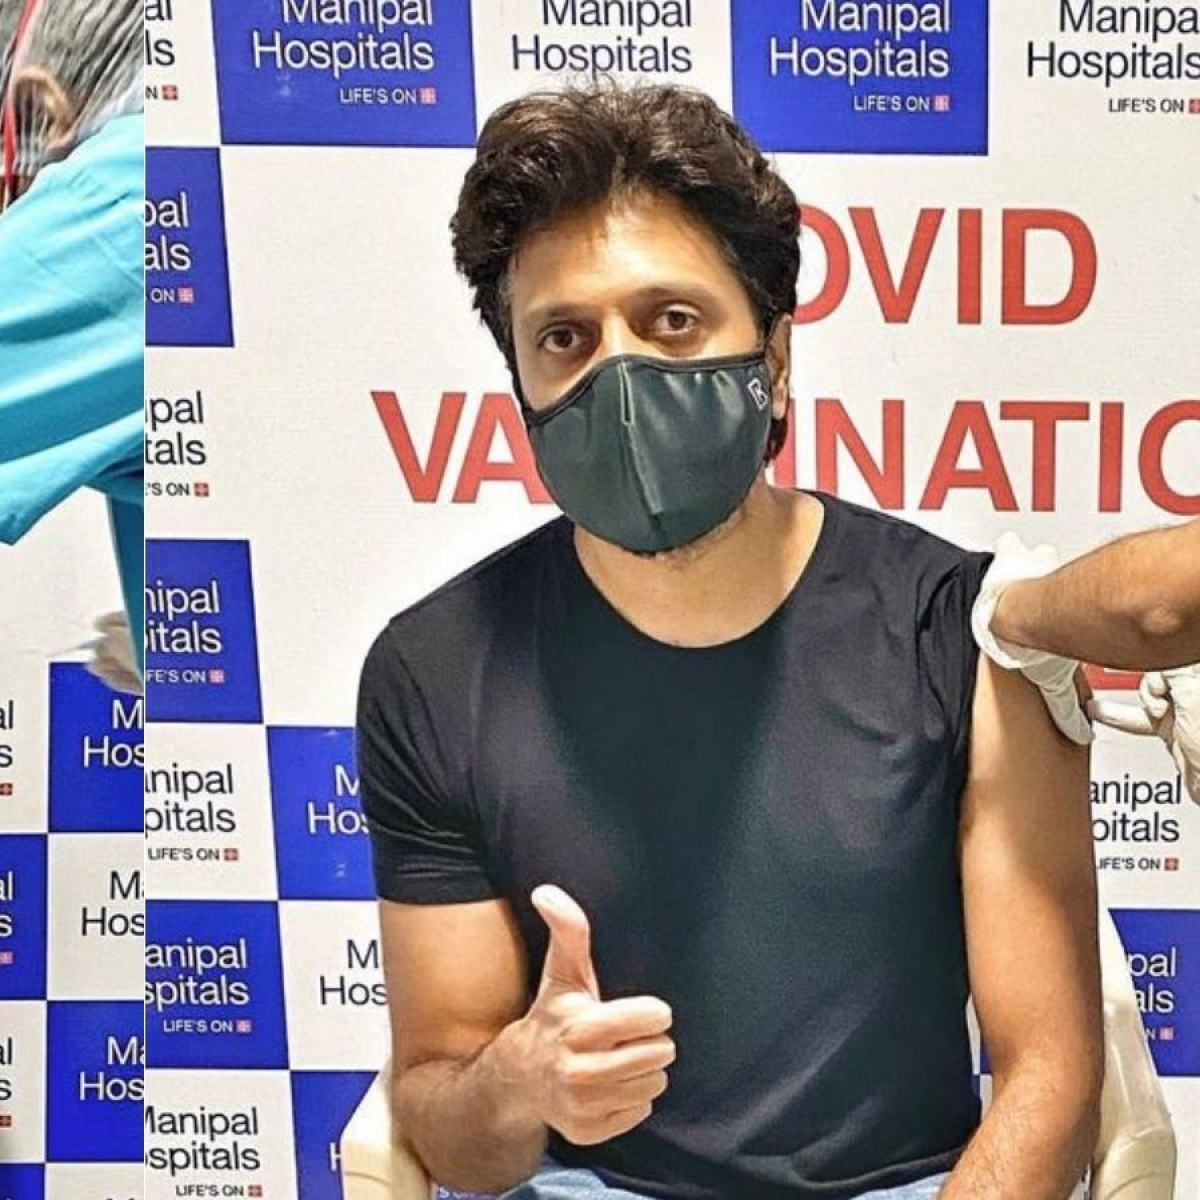 Riteish Deshmukh, Genelia D'souza get vaccinated against COVID-19, urge fans to take the jab